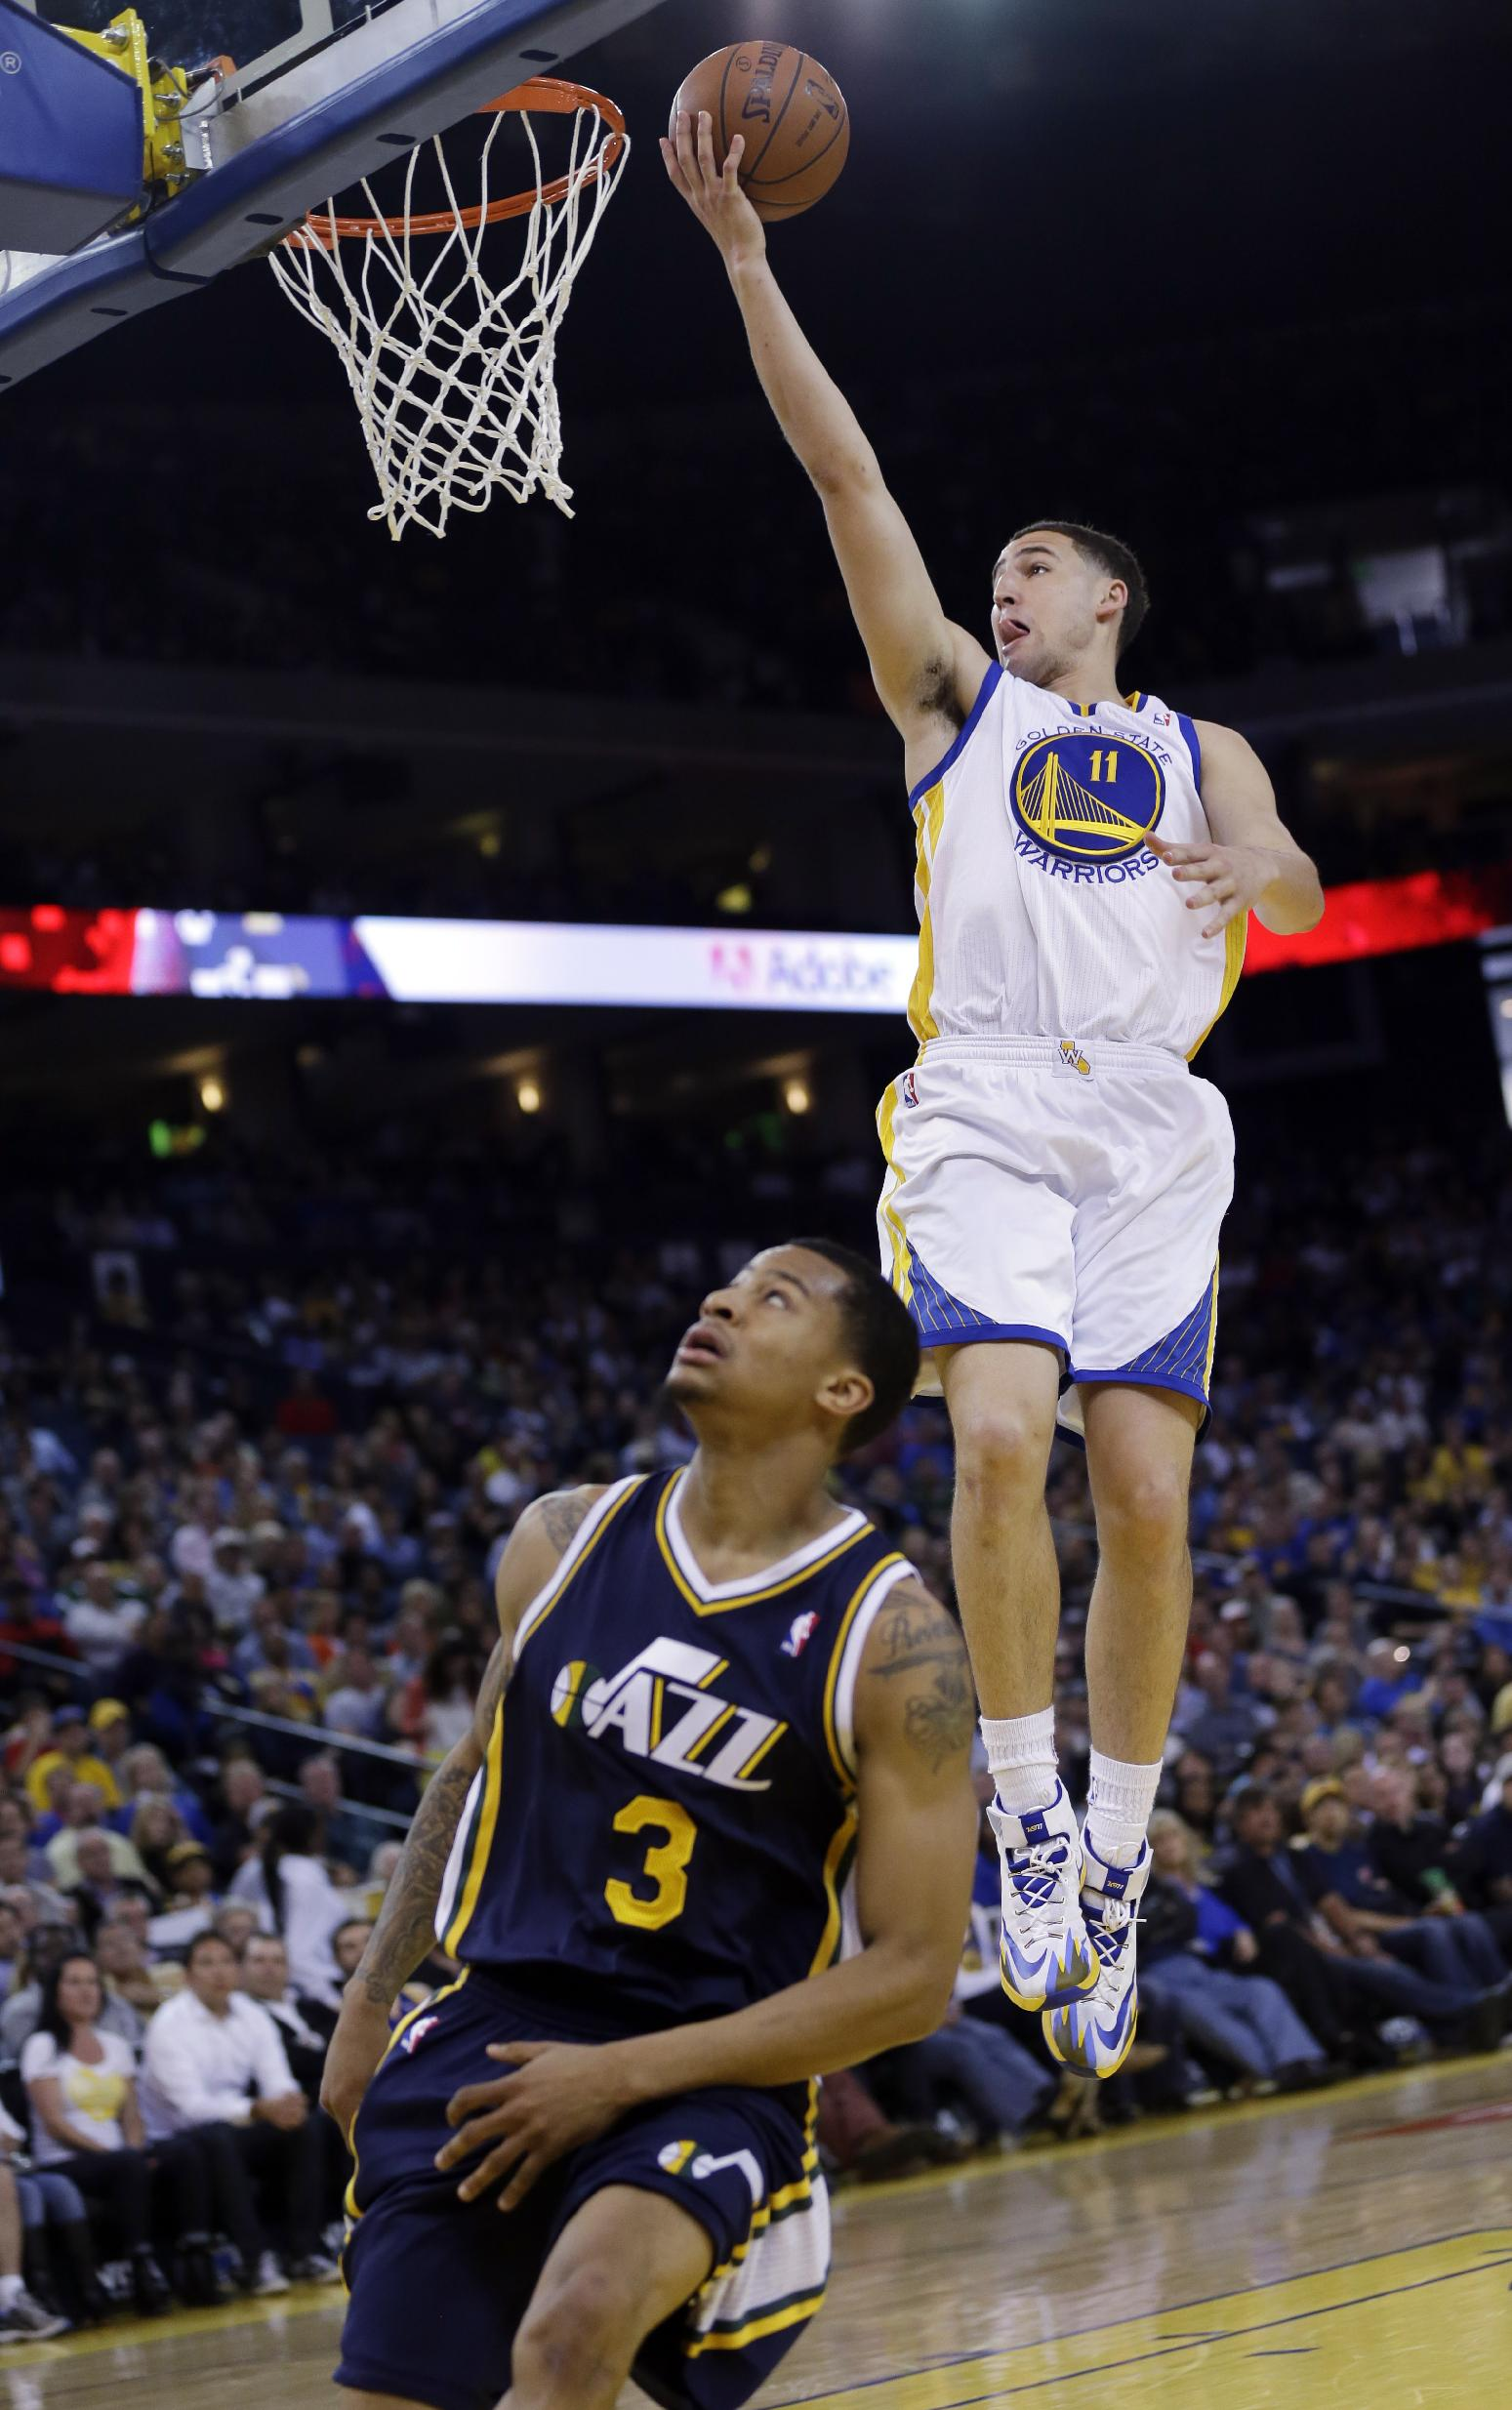 Golden State Warriors guard Klay Thompson (11) scores over Utah Jazz guard Trey Burke (3) during the first half of an NBA basketball game Sunday, April 6, 2014, in Oakland, Calif